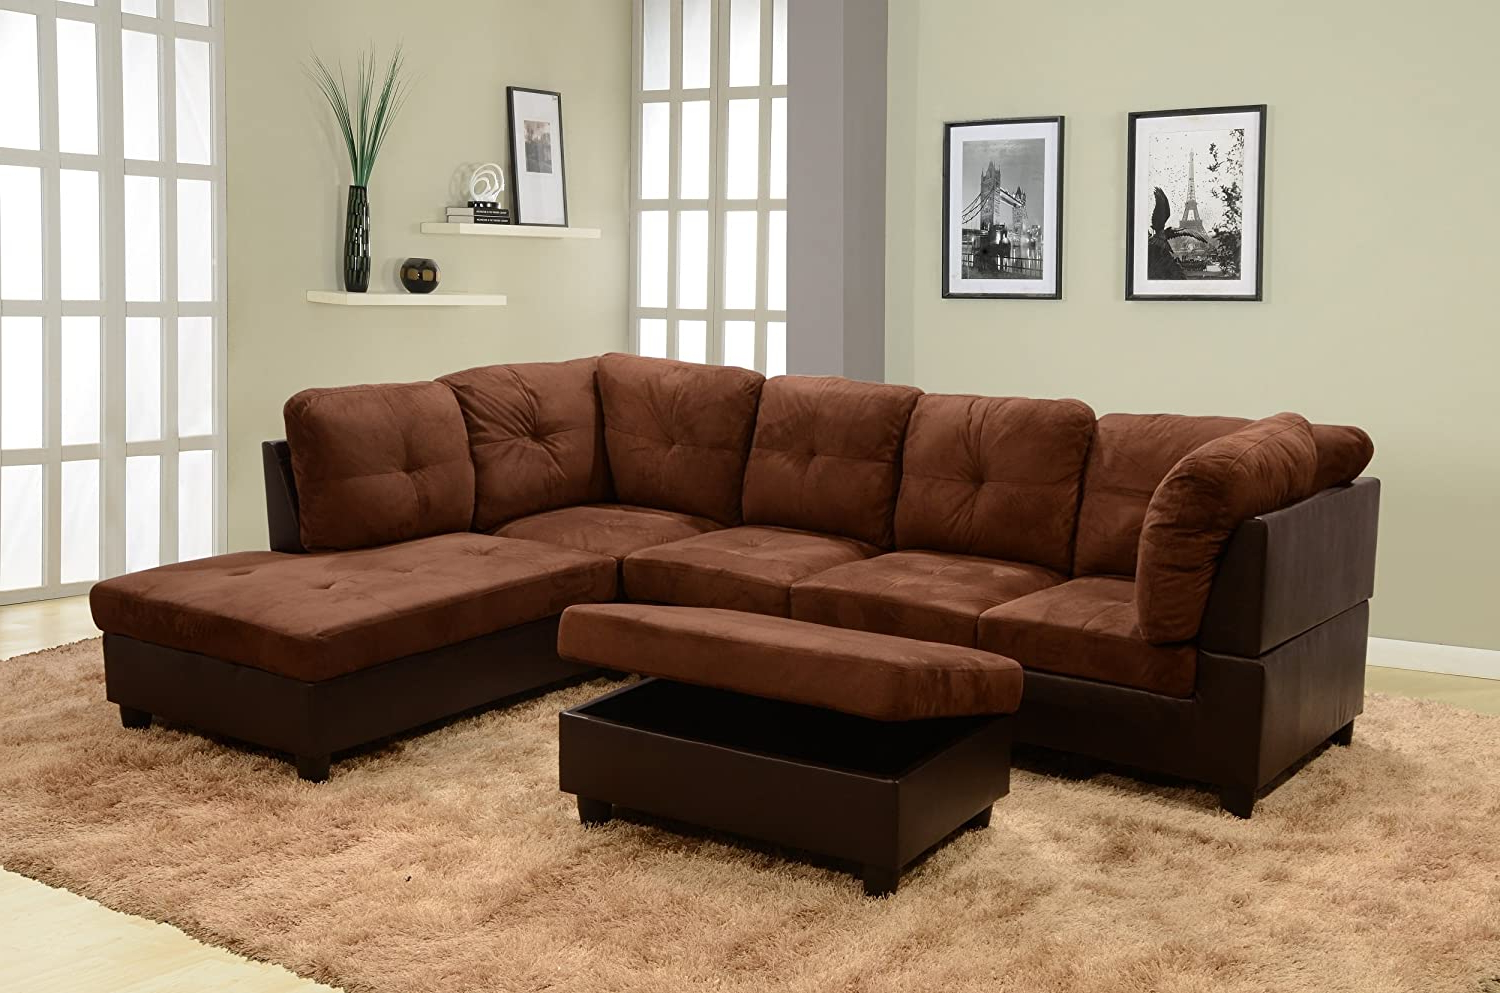 Monet Right Facing Sectional Sofas Pertaining To Most Up To Date Ainehome 3 Pcs Living Room Set, Sectional Sofa Set (View 2 of 25)